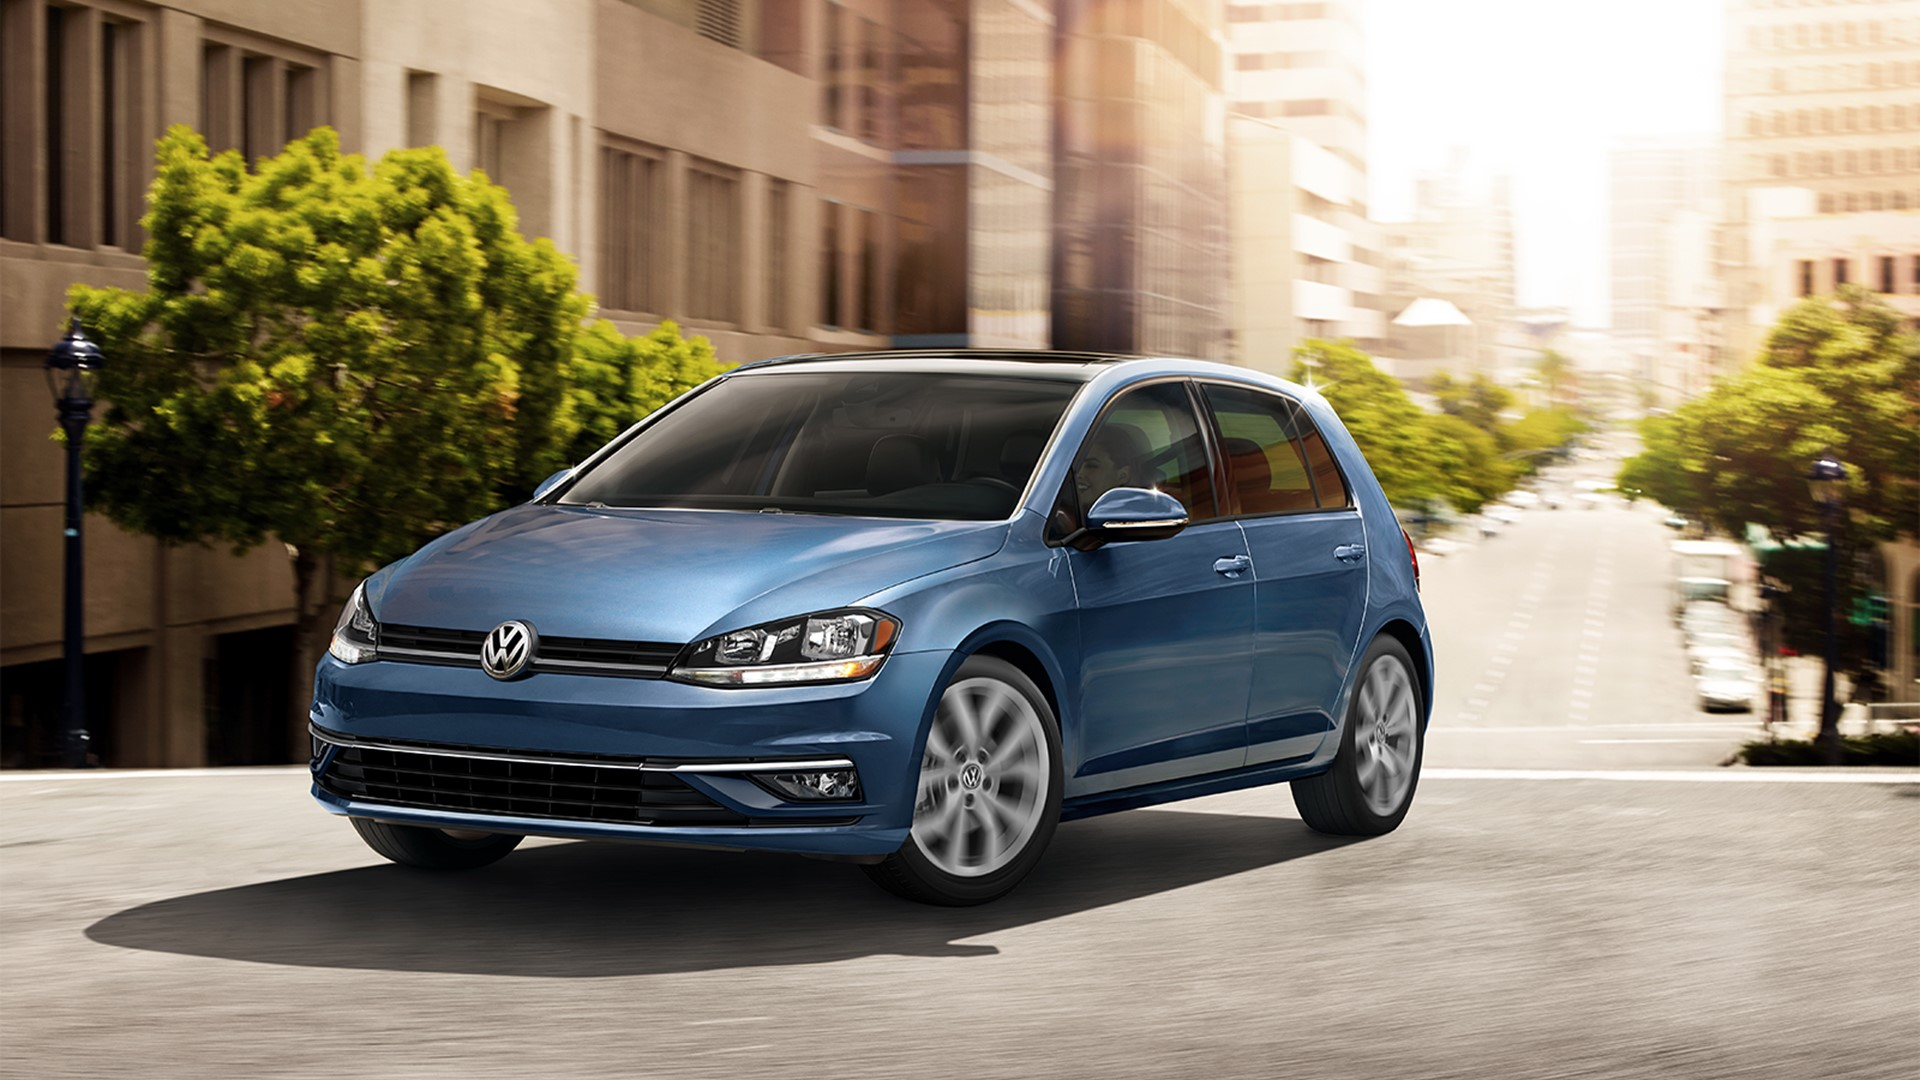 Blue Volkswagen Golf Driving in the City